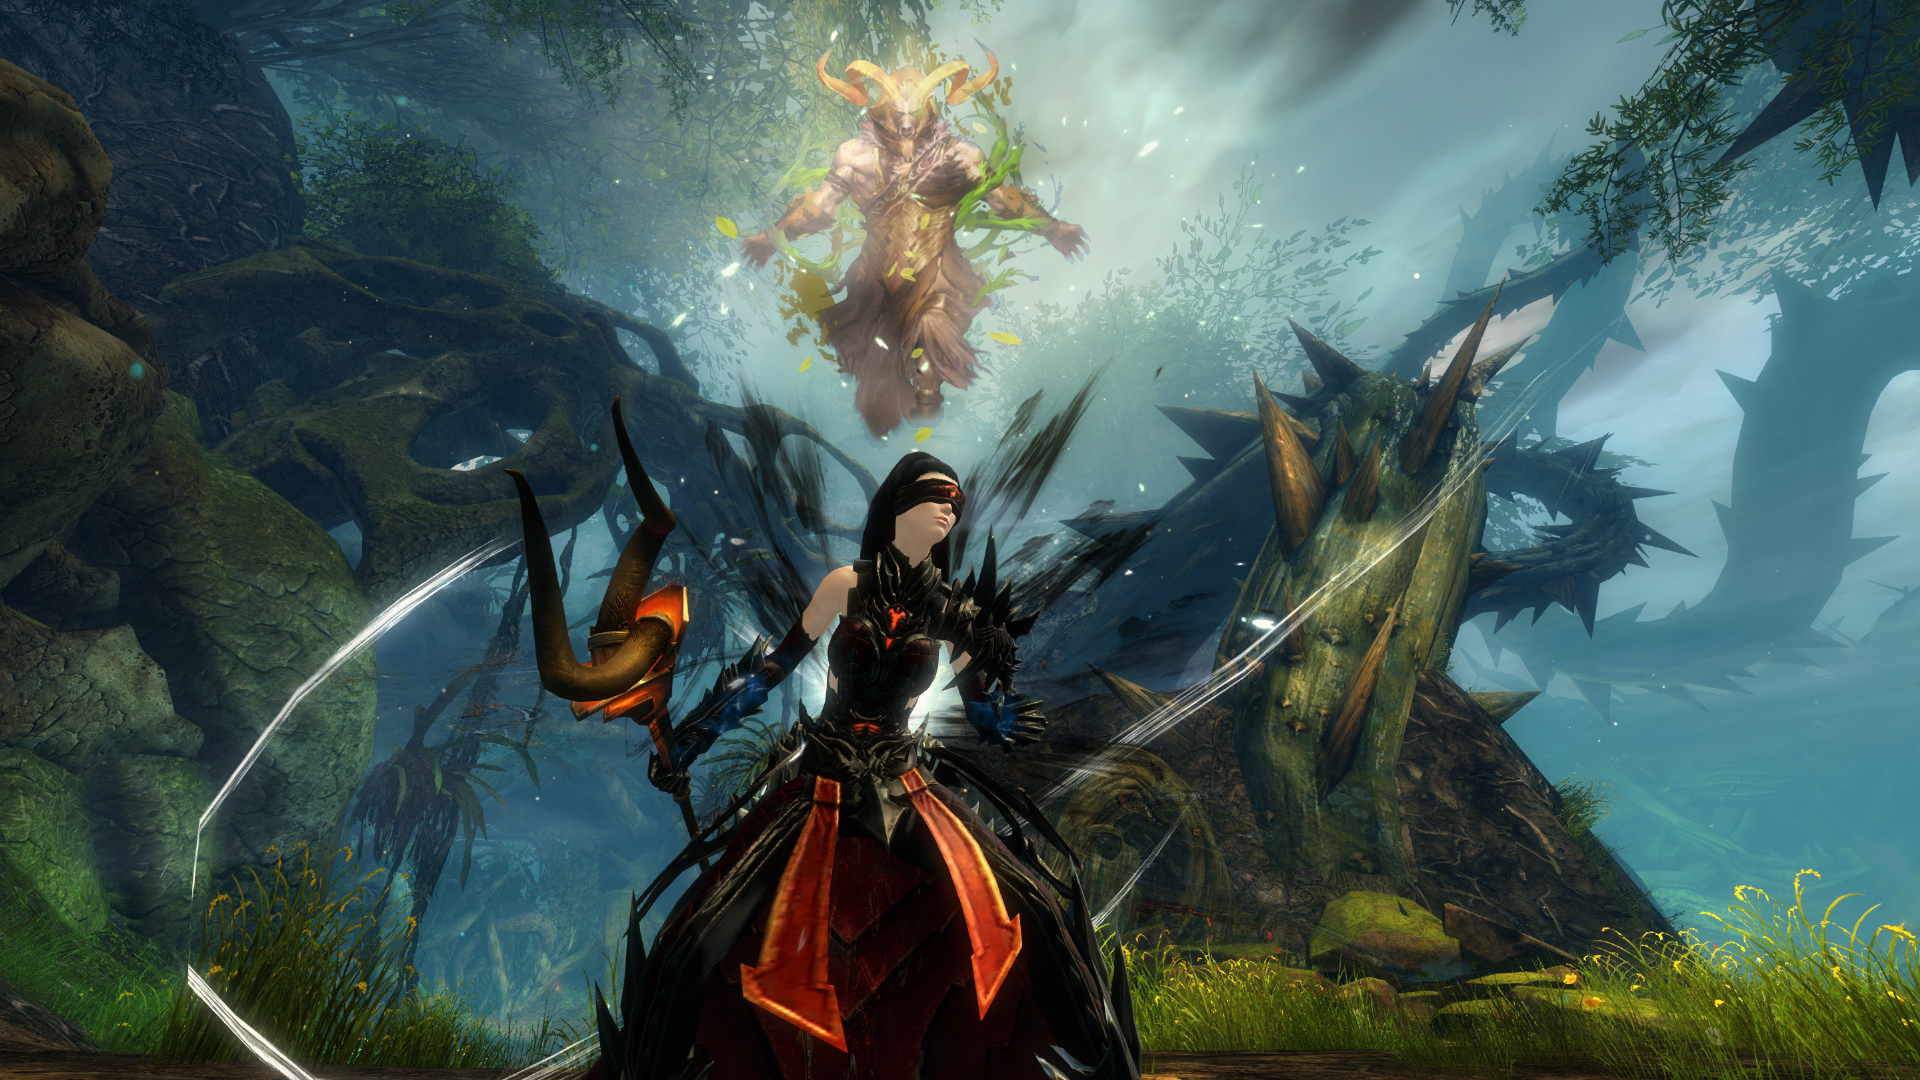 Guild Wars 2: Heart of Thorns' Revenant will channel the